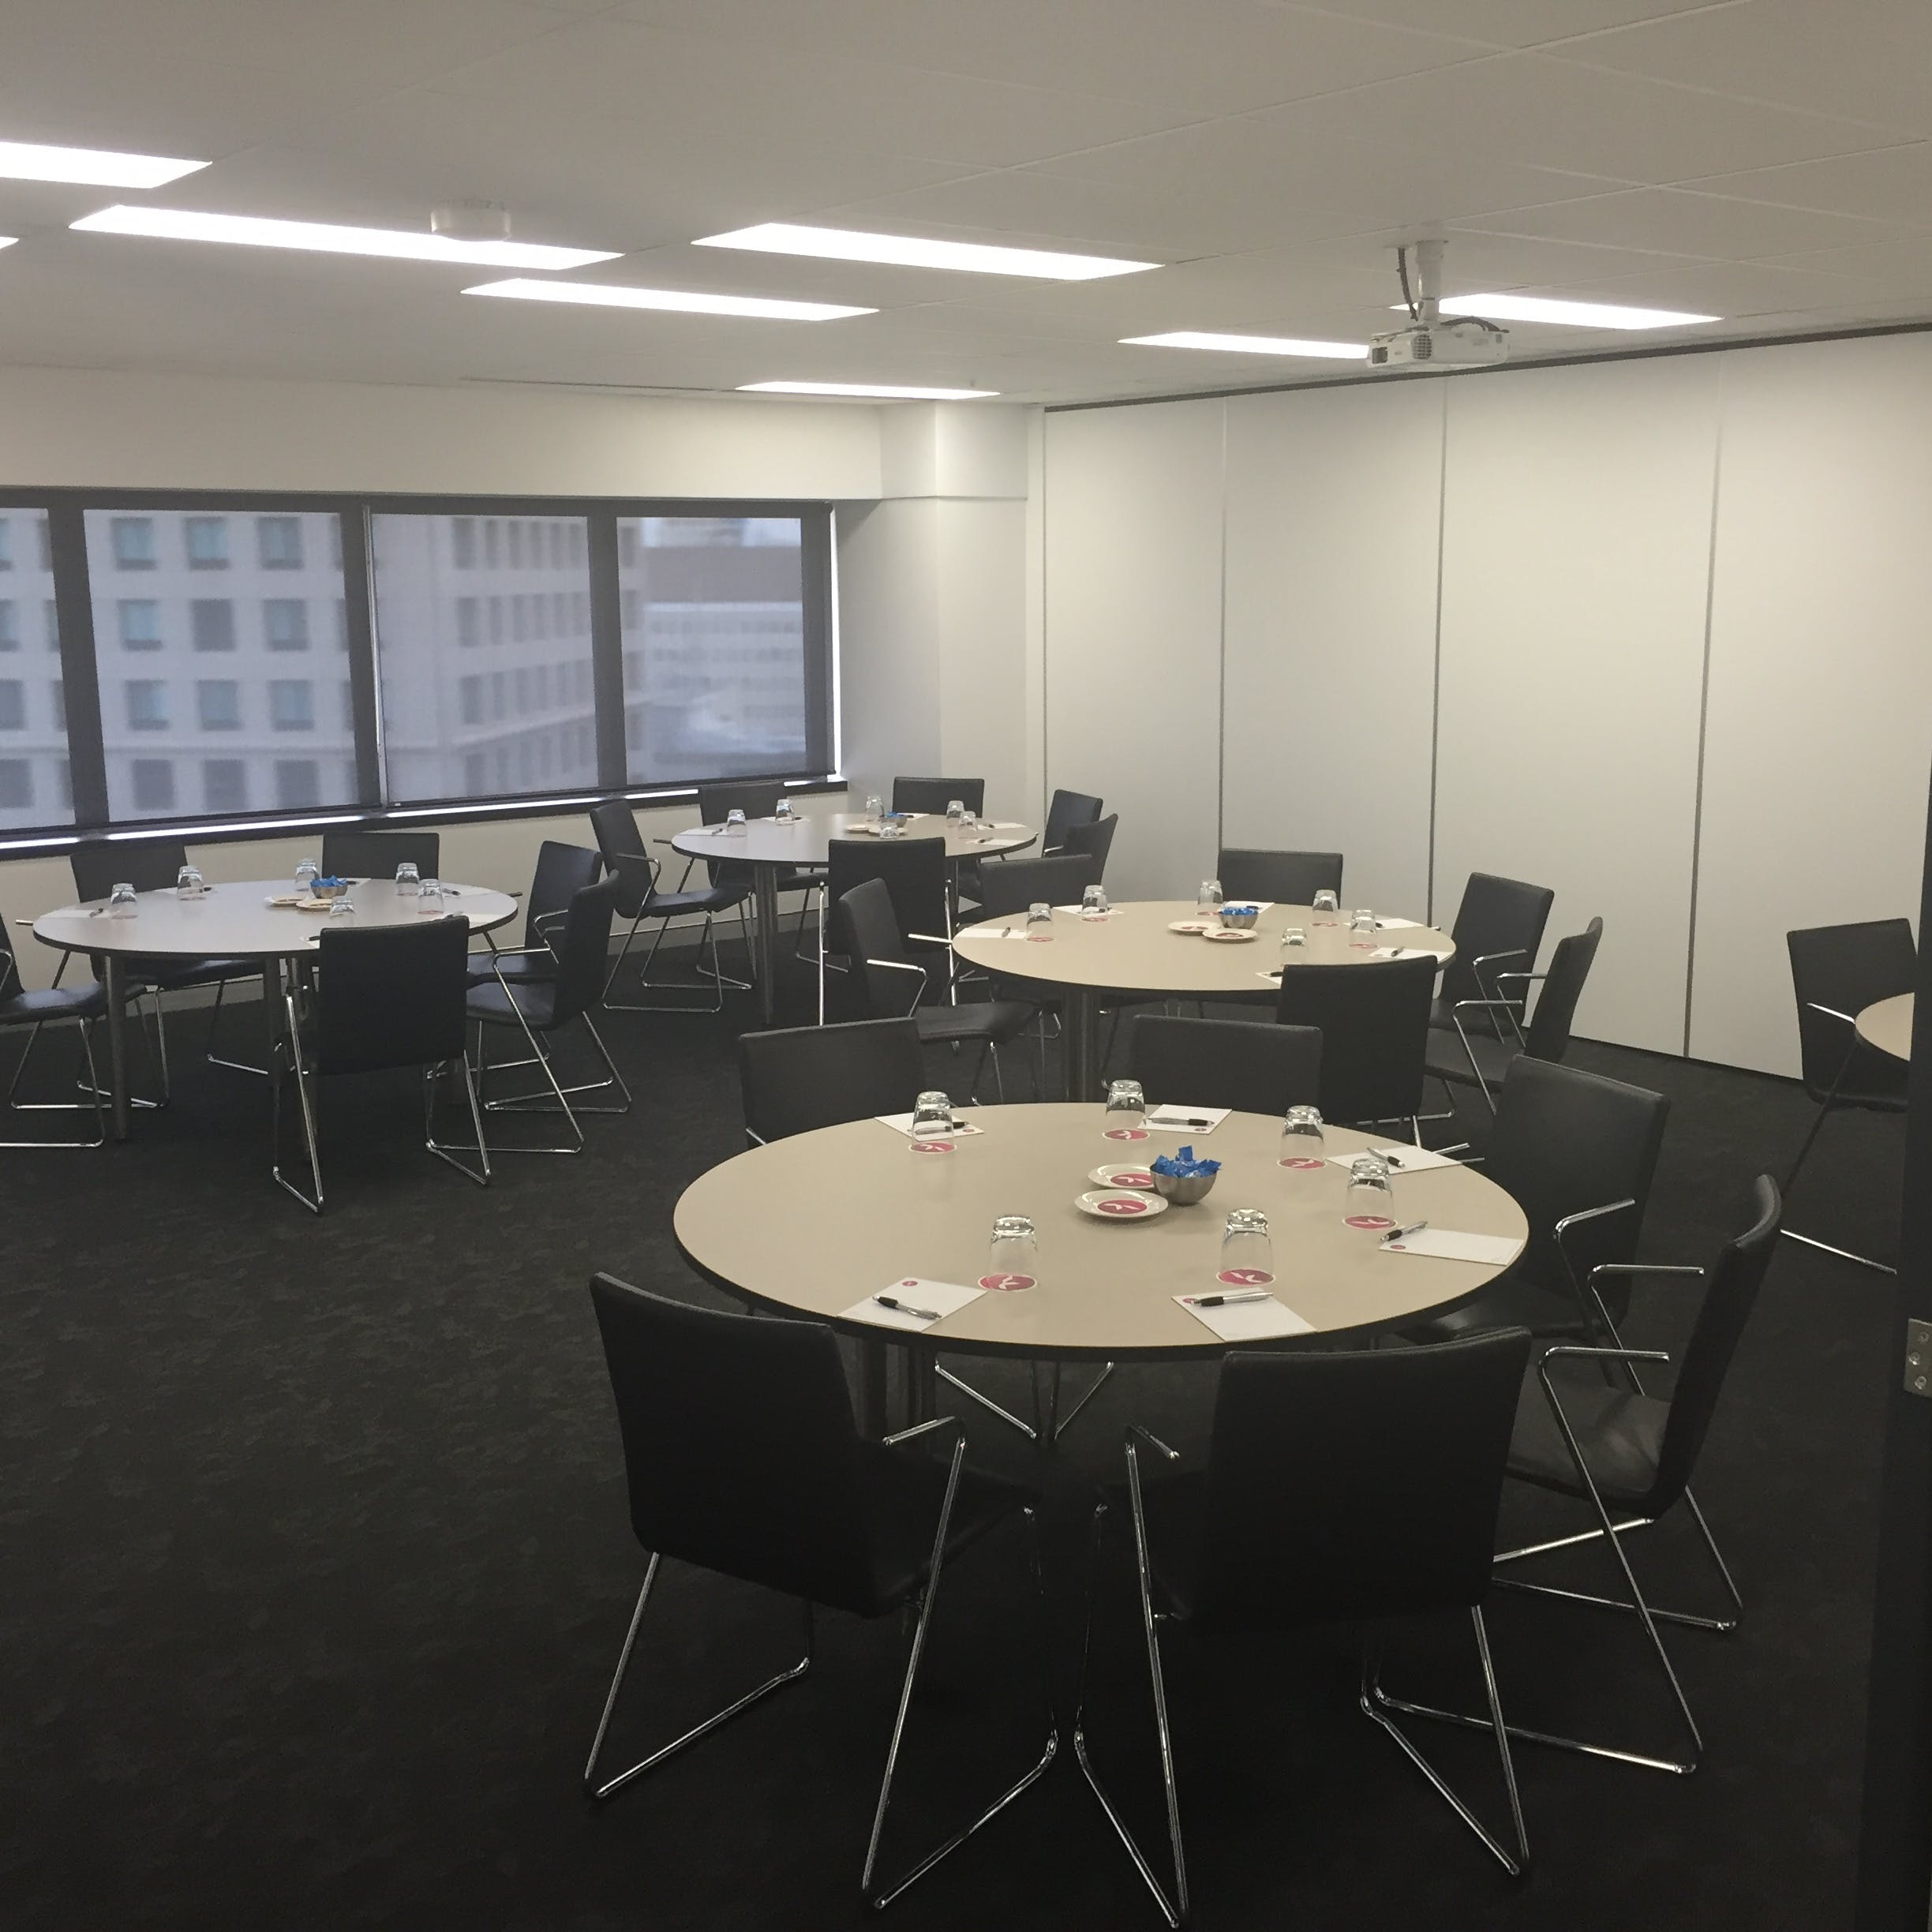 Standard Room, function room at Karstens Brisbane, image 1